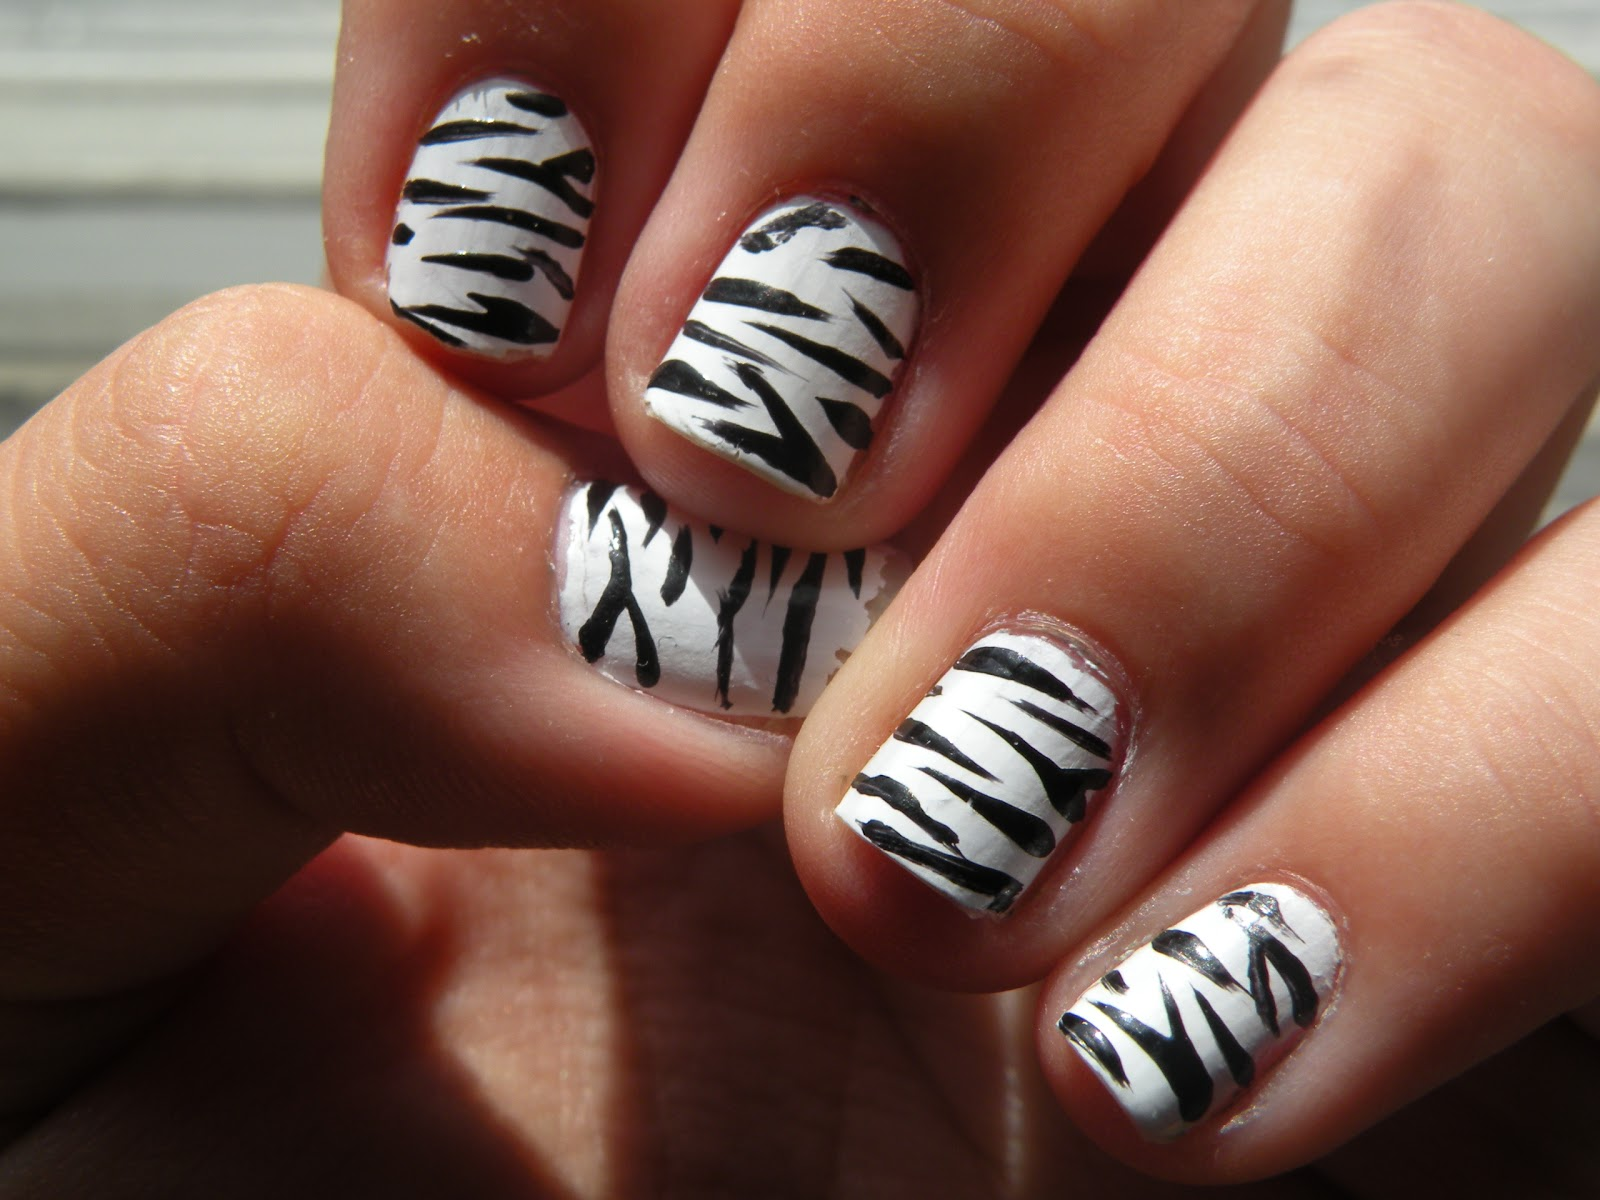 Nail Designs Zebra Print | Nail Art Designs